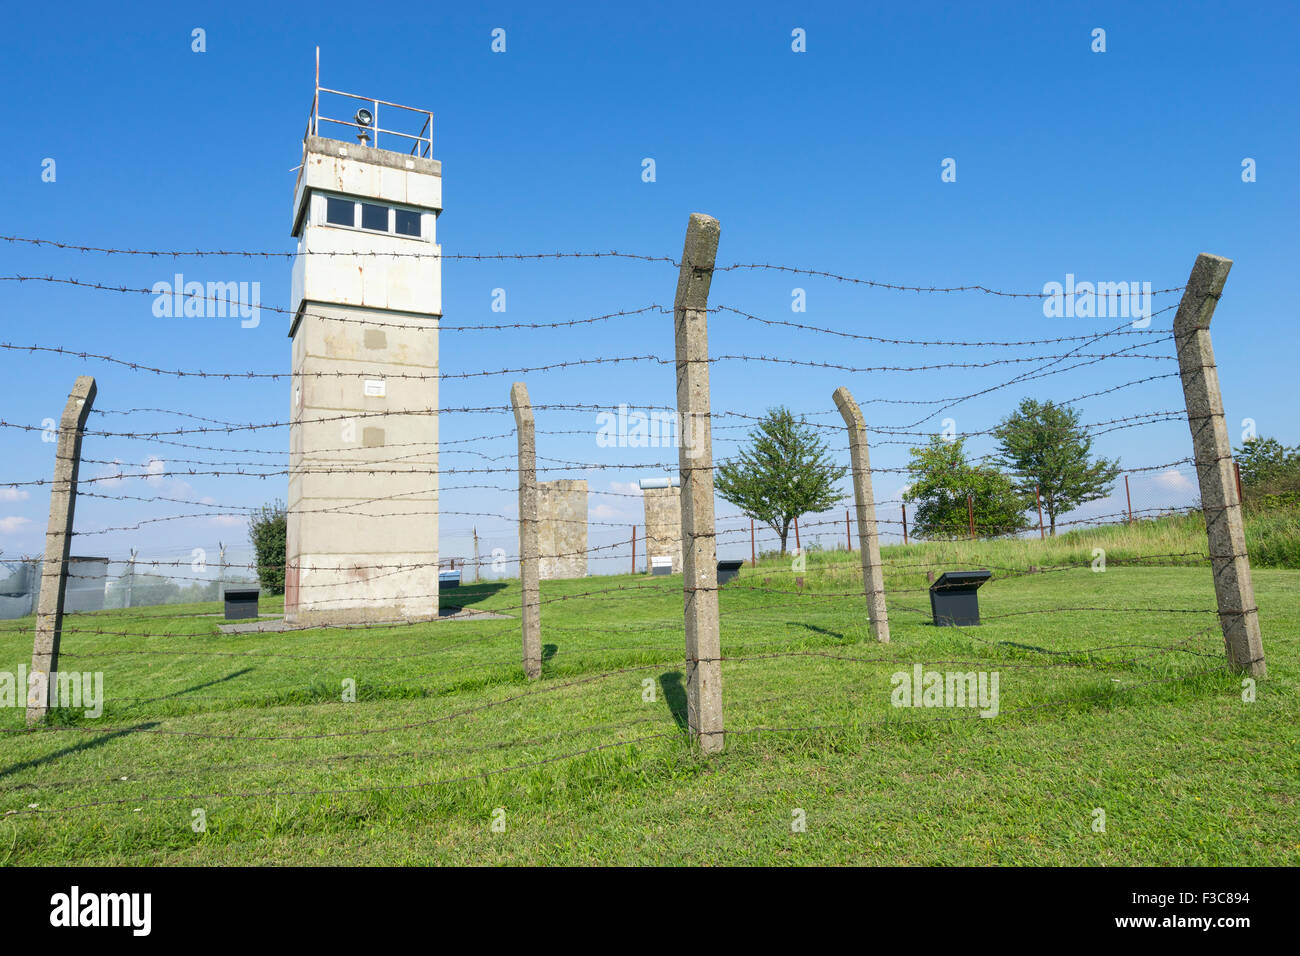 Guard tower at former East German border at Schlagsdorf in Germany - Stock Image